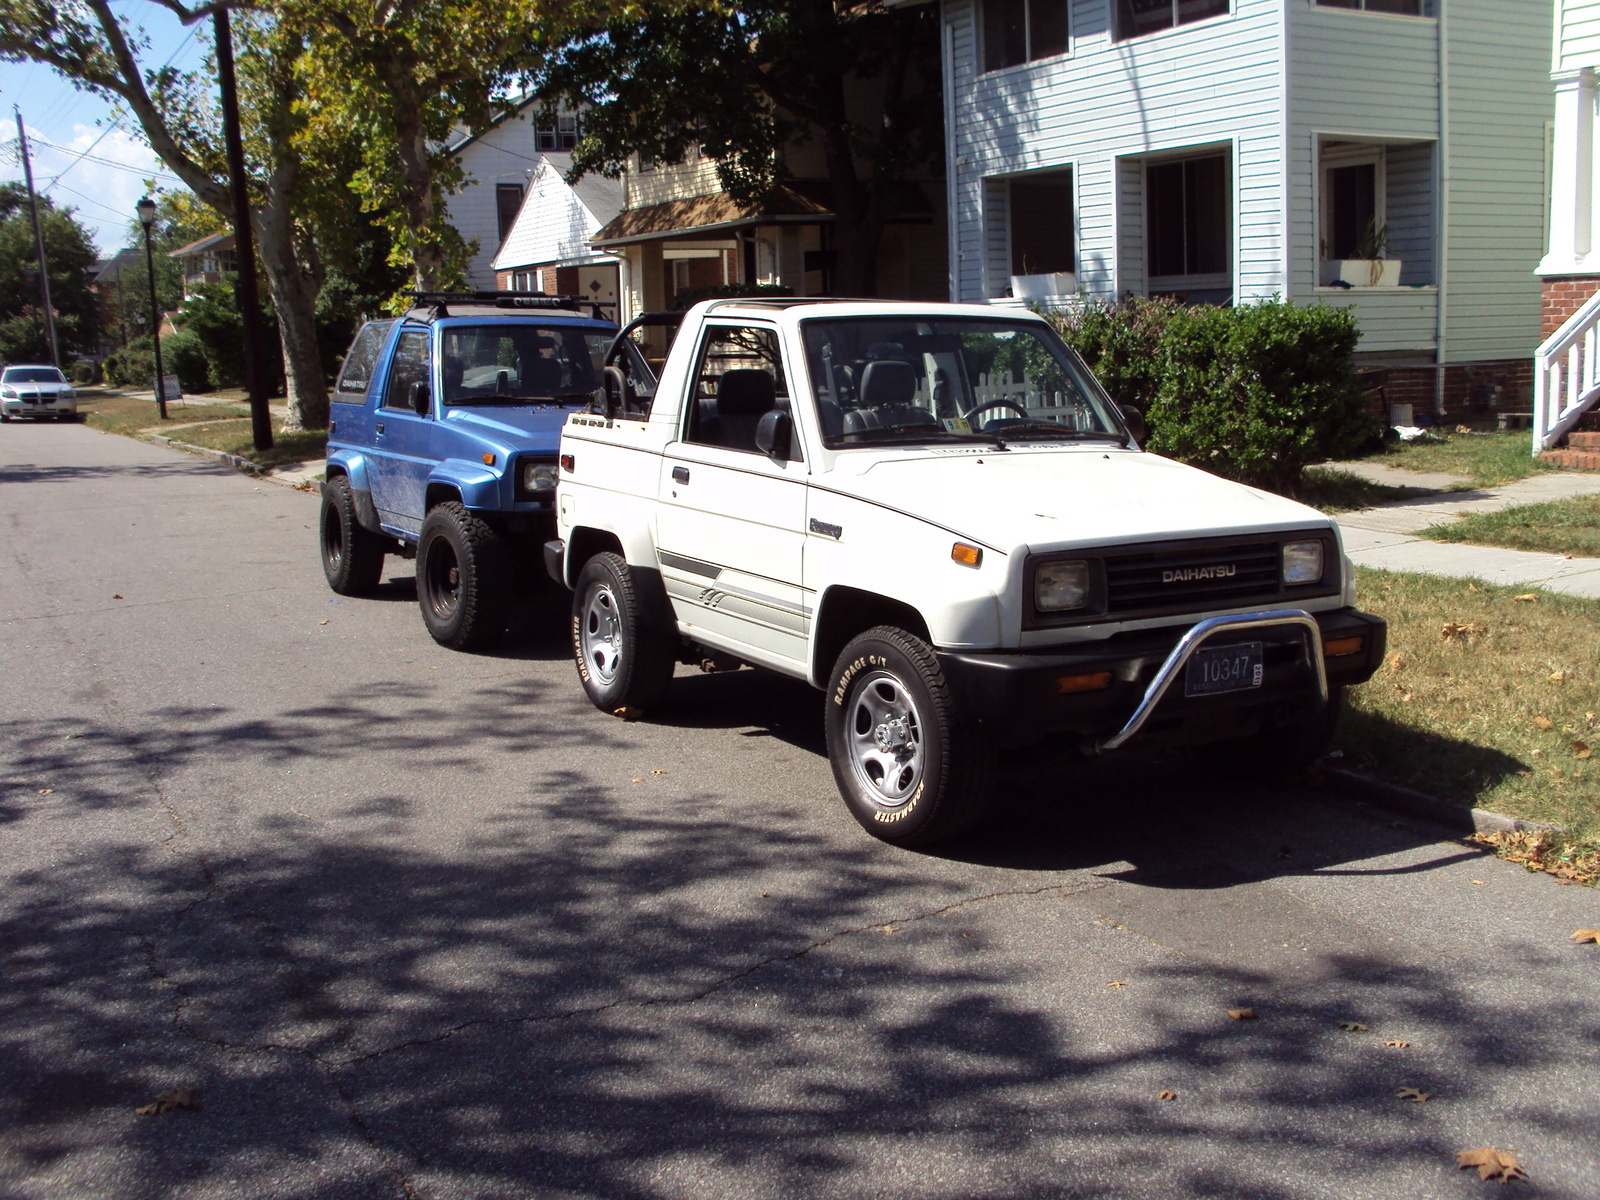 Maxresdefault furthermore Image Dcgoow besides Ca E Aecb Fd A Df A Af C Daihatsu Rocky Wagon El Ii Td likewise Large together with Maxresdefault. on 1992 daihatsu rocky